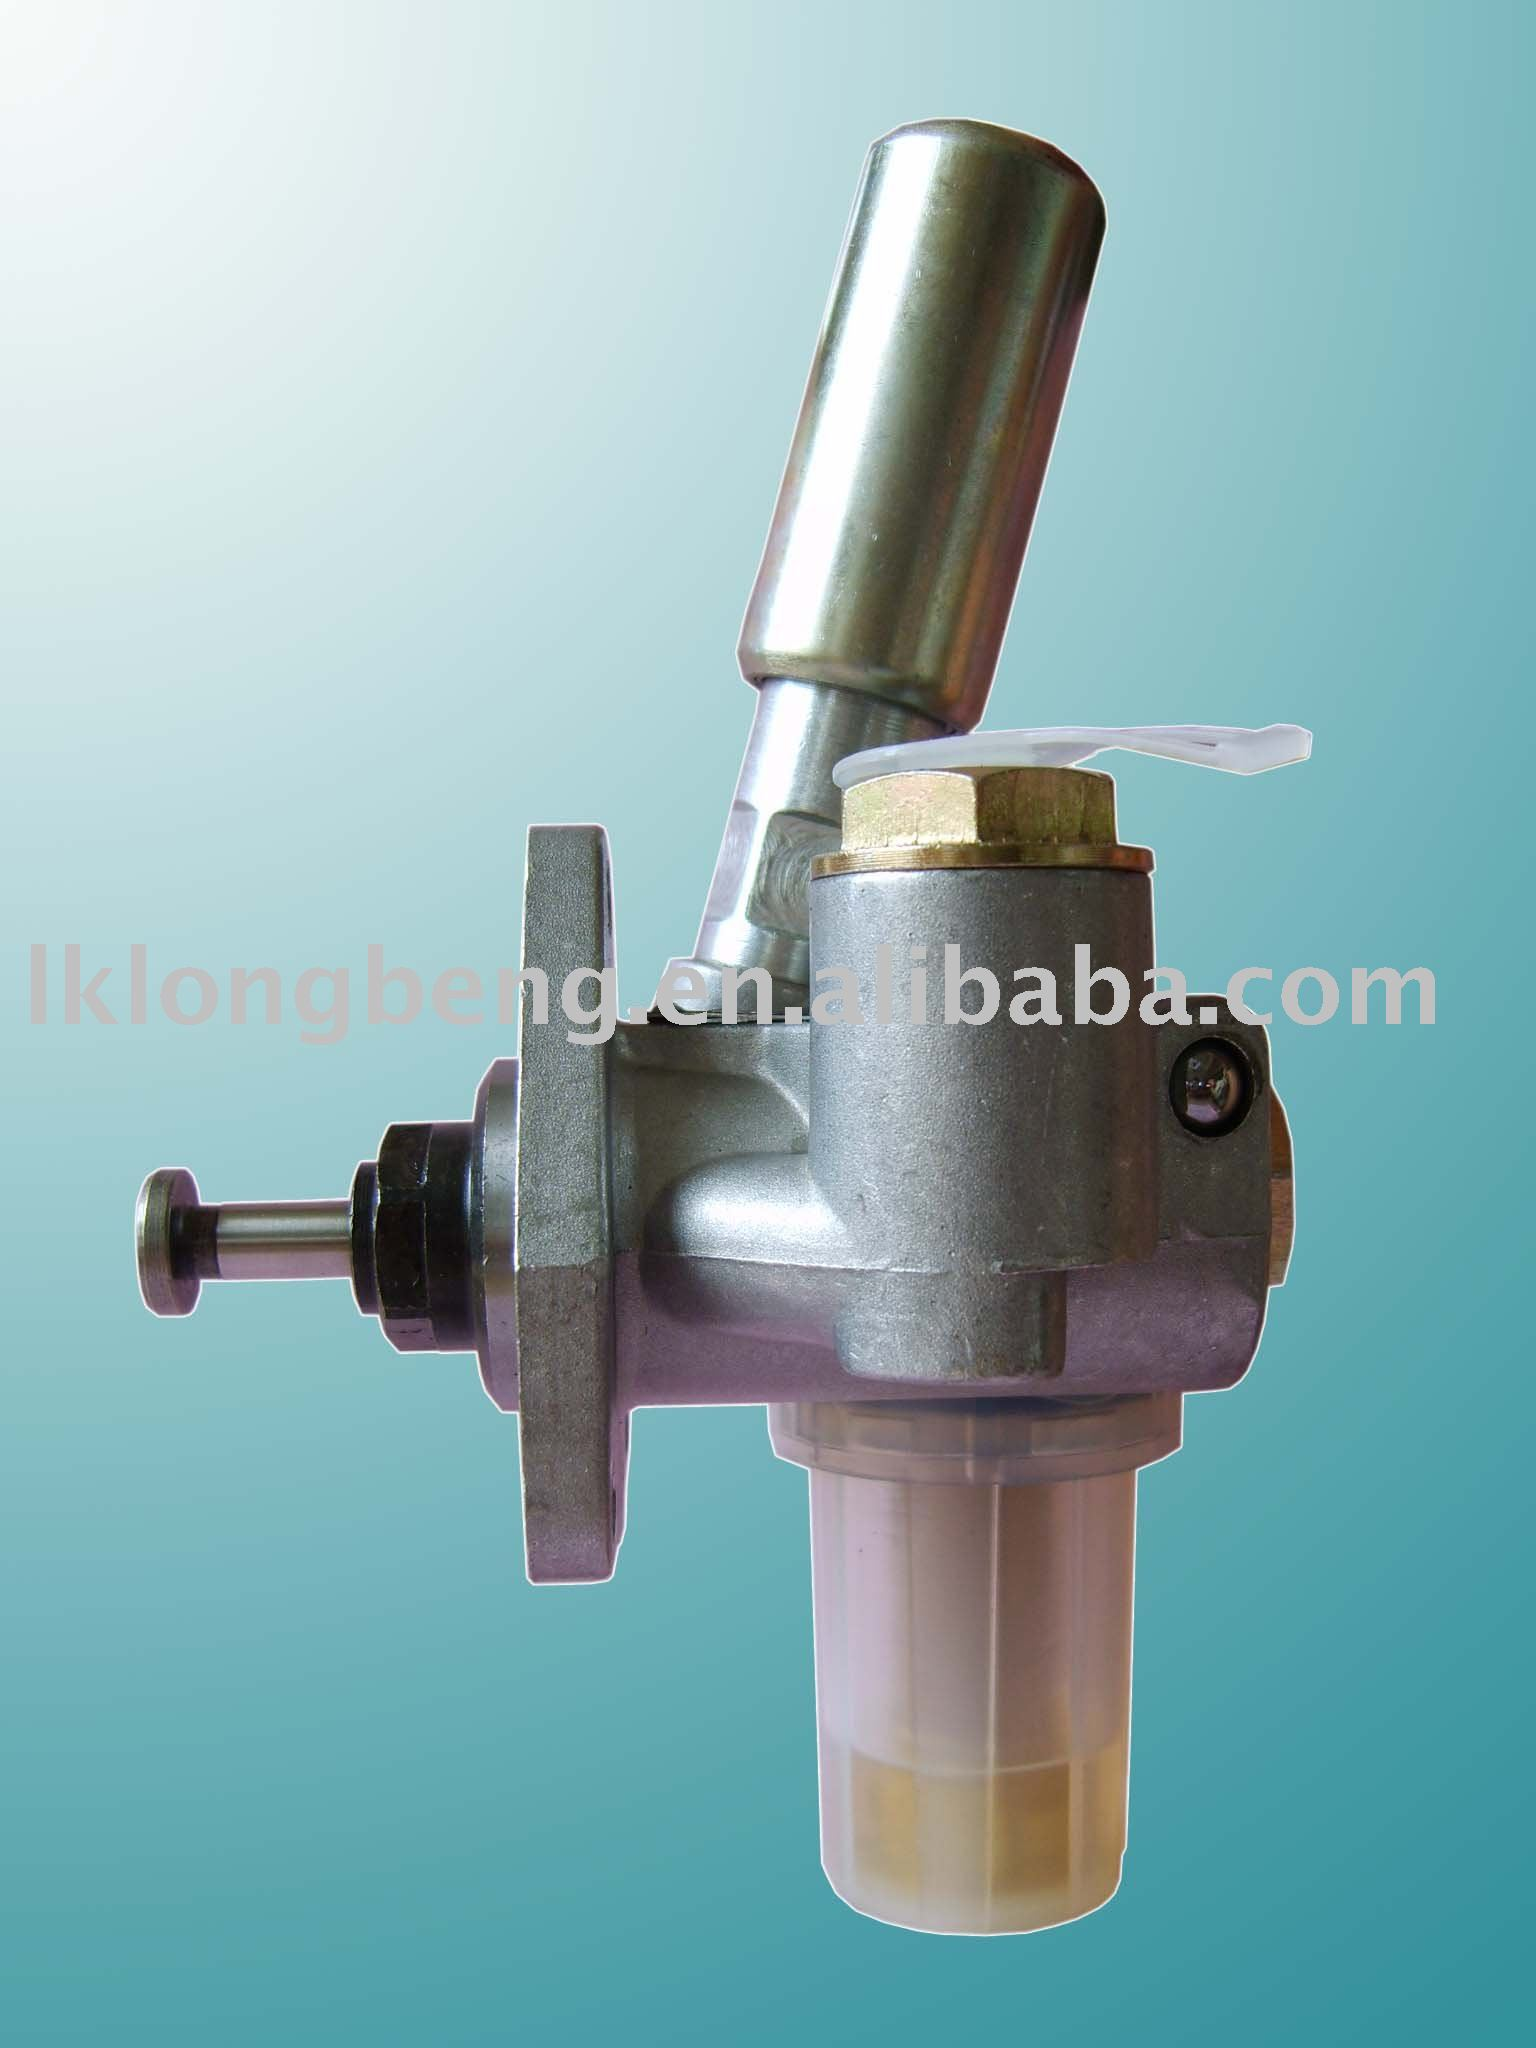 S362 Fuel Delivery pump